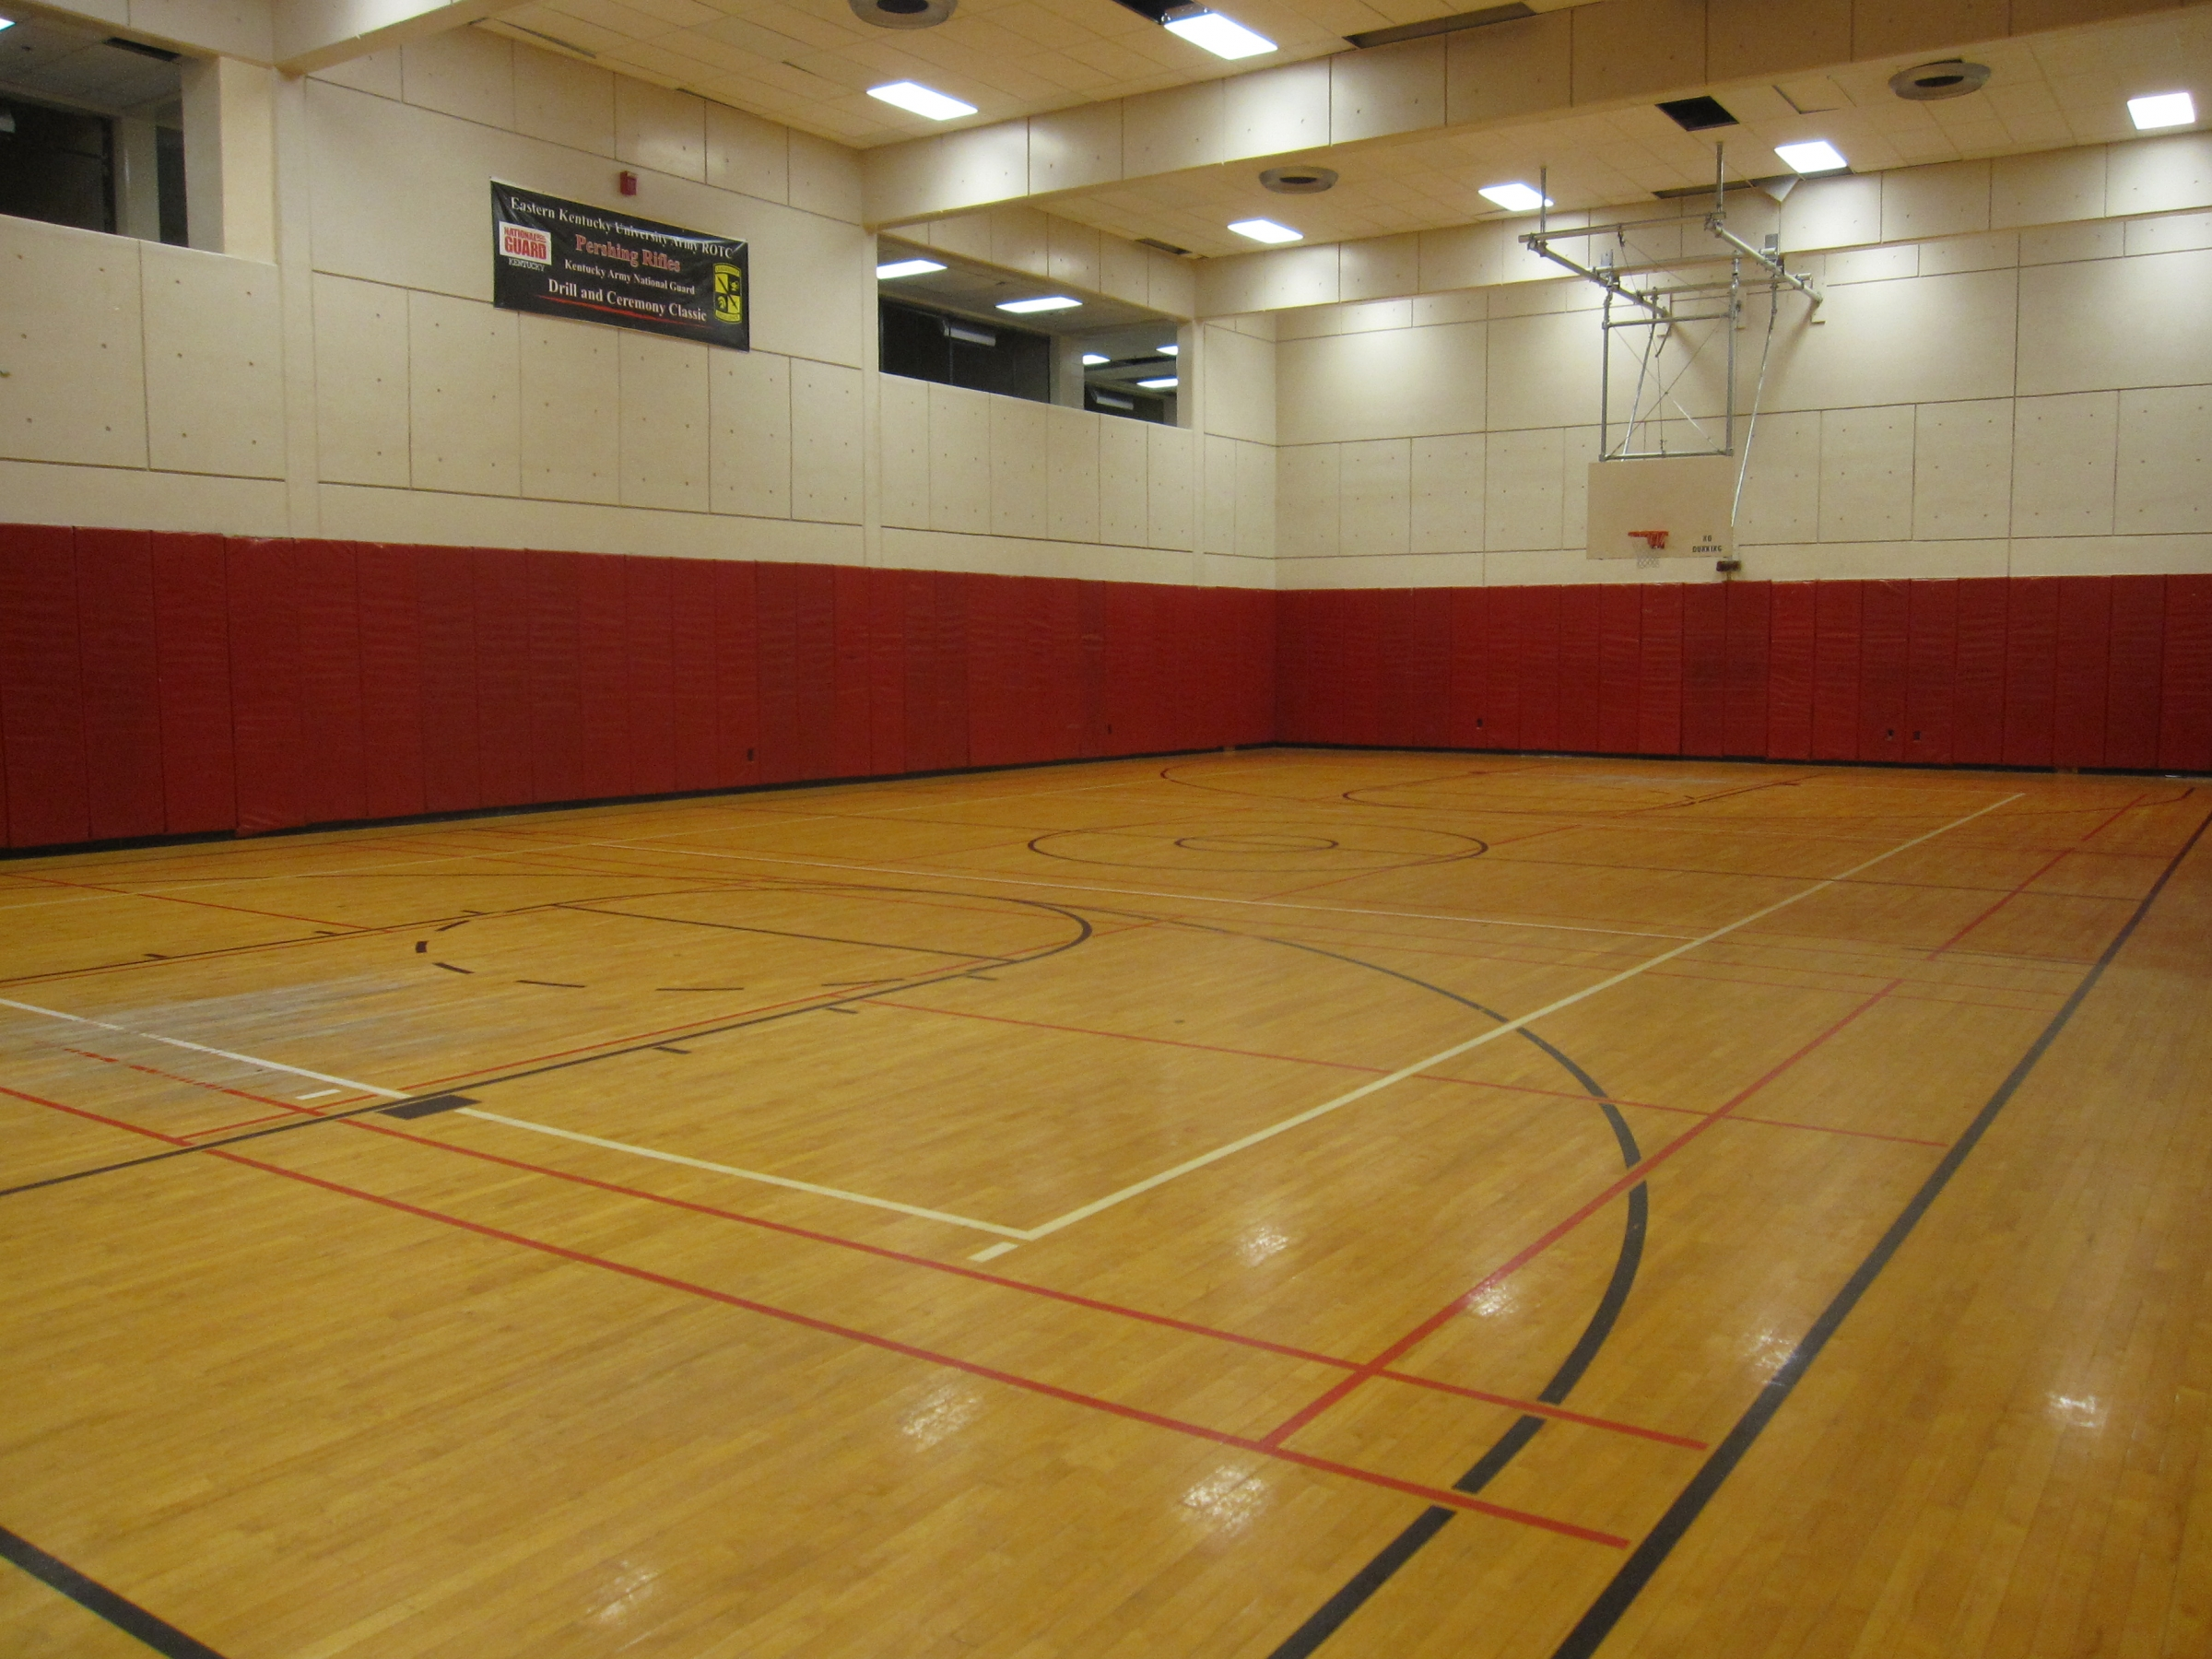 Facilities campus recreation eastern kentucky university for Price of indoor basketball court